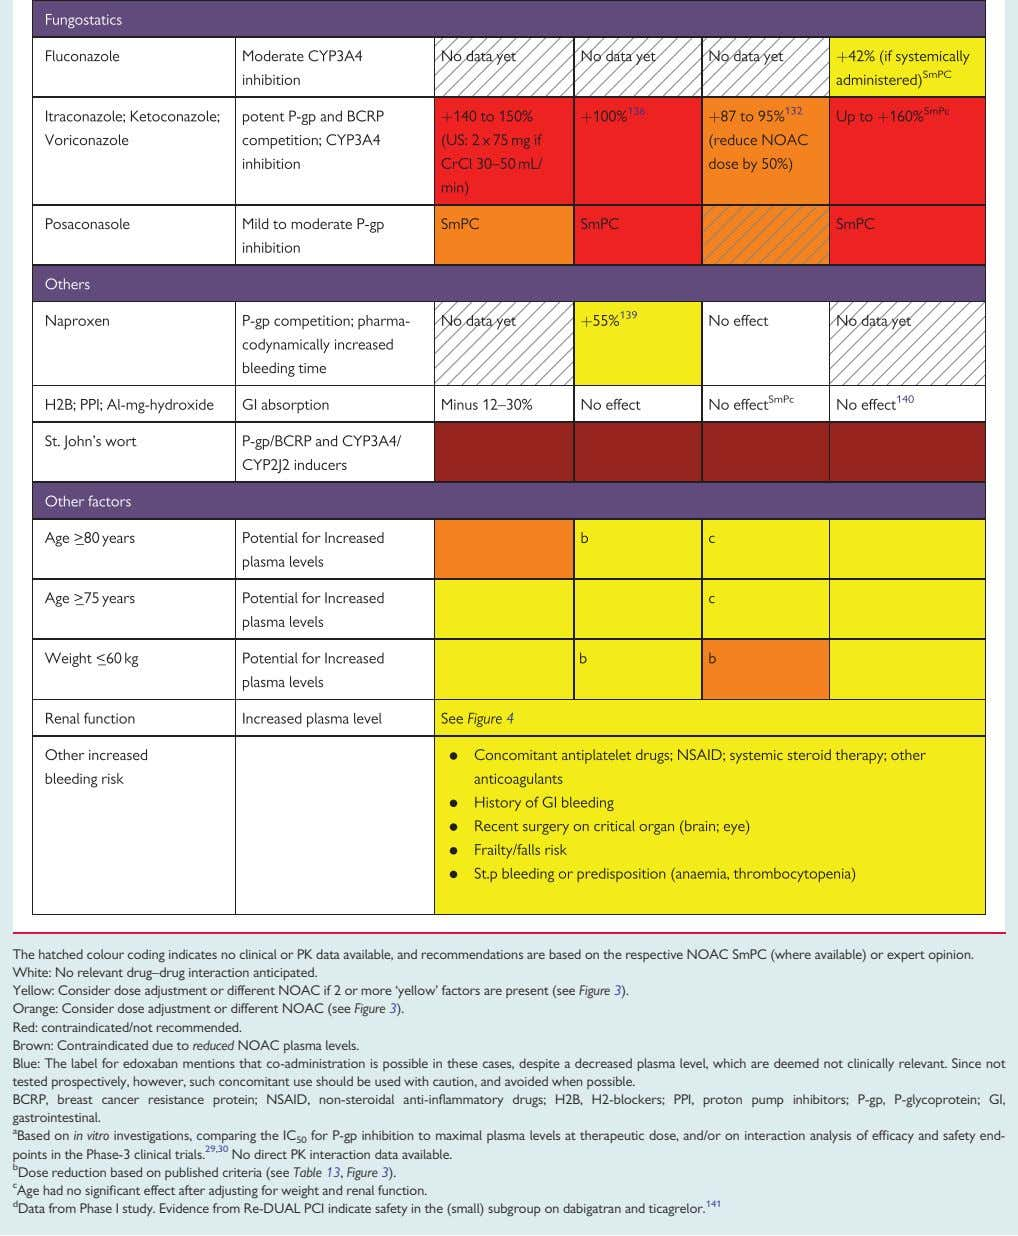 The hatched colour coding indicates no clinical or PK data available, and recommendations are based